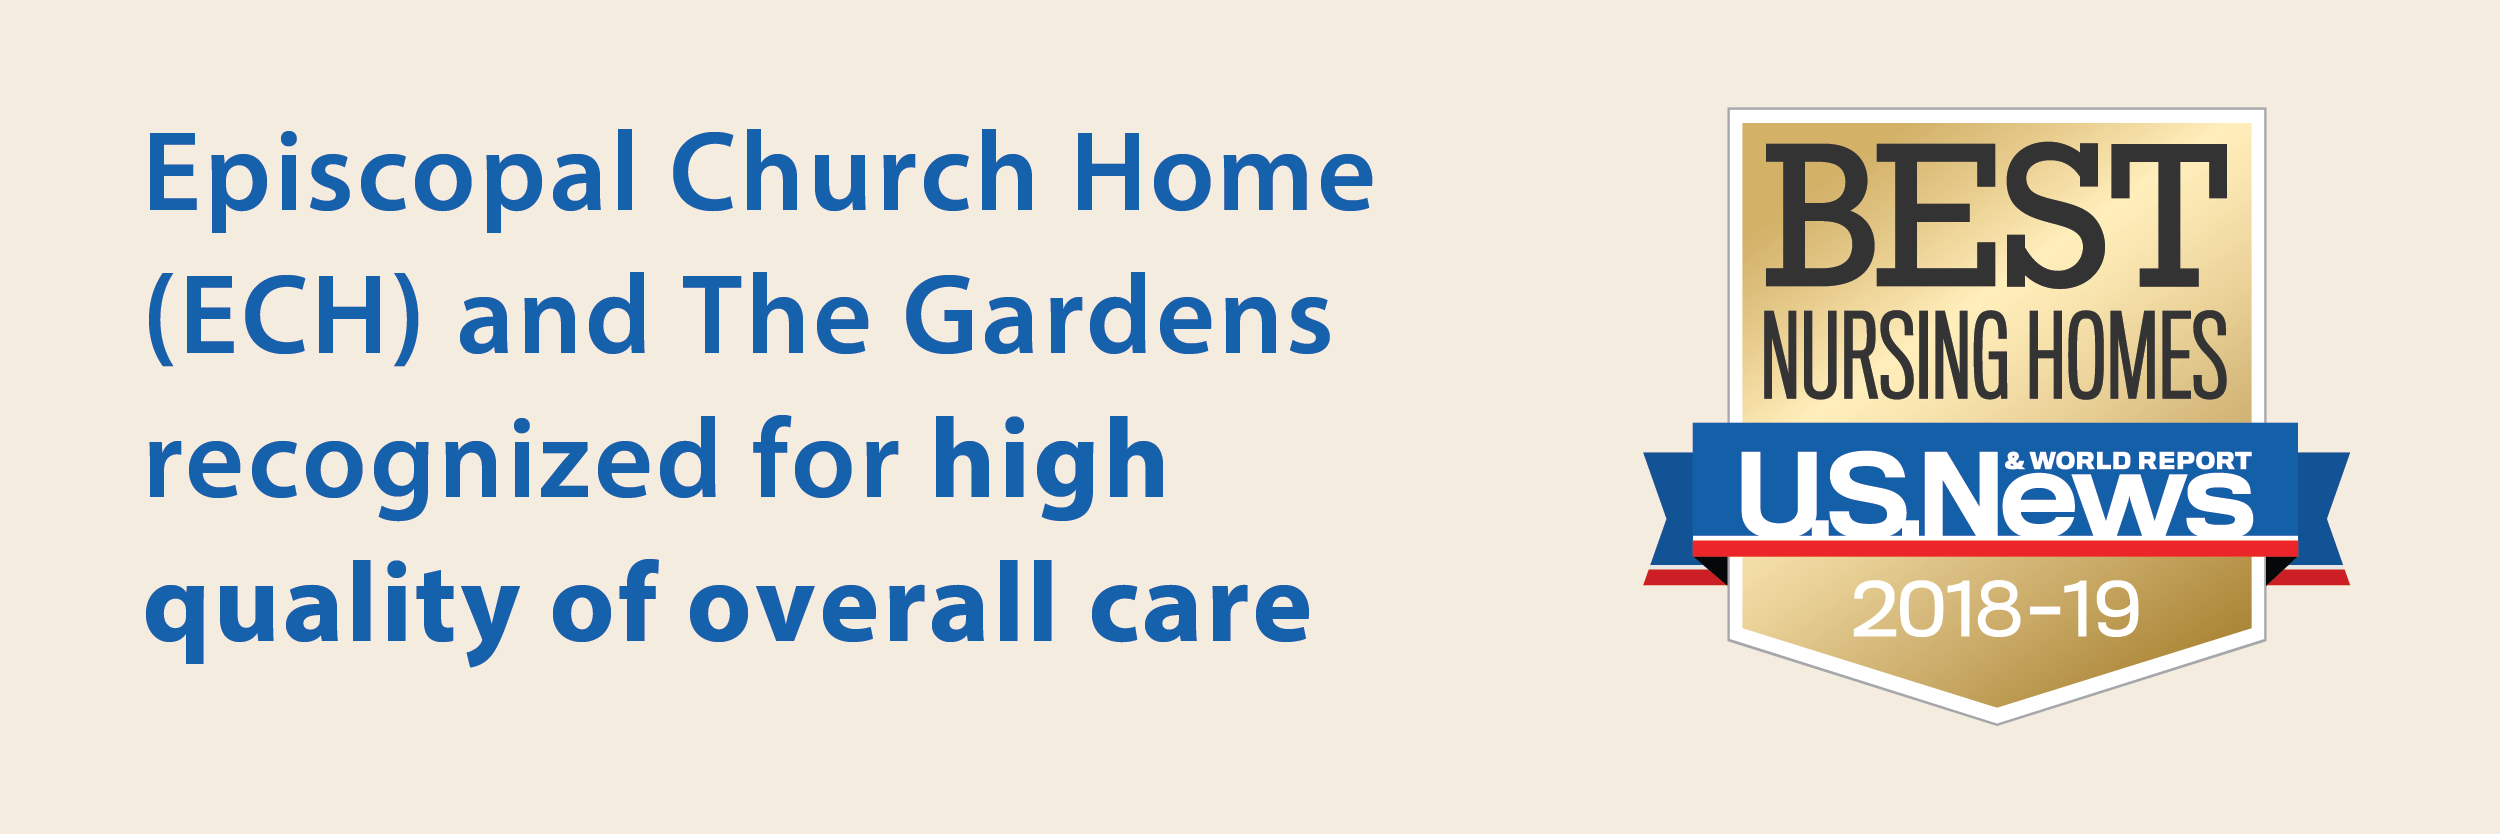 Episcopal Church Home and The Gardens recognized for high quality of overall care